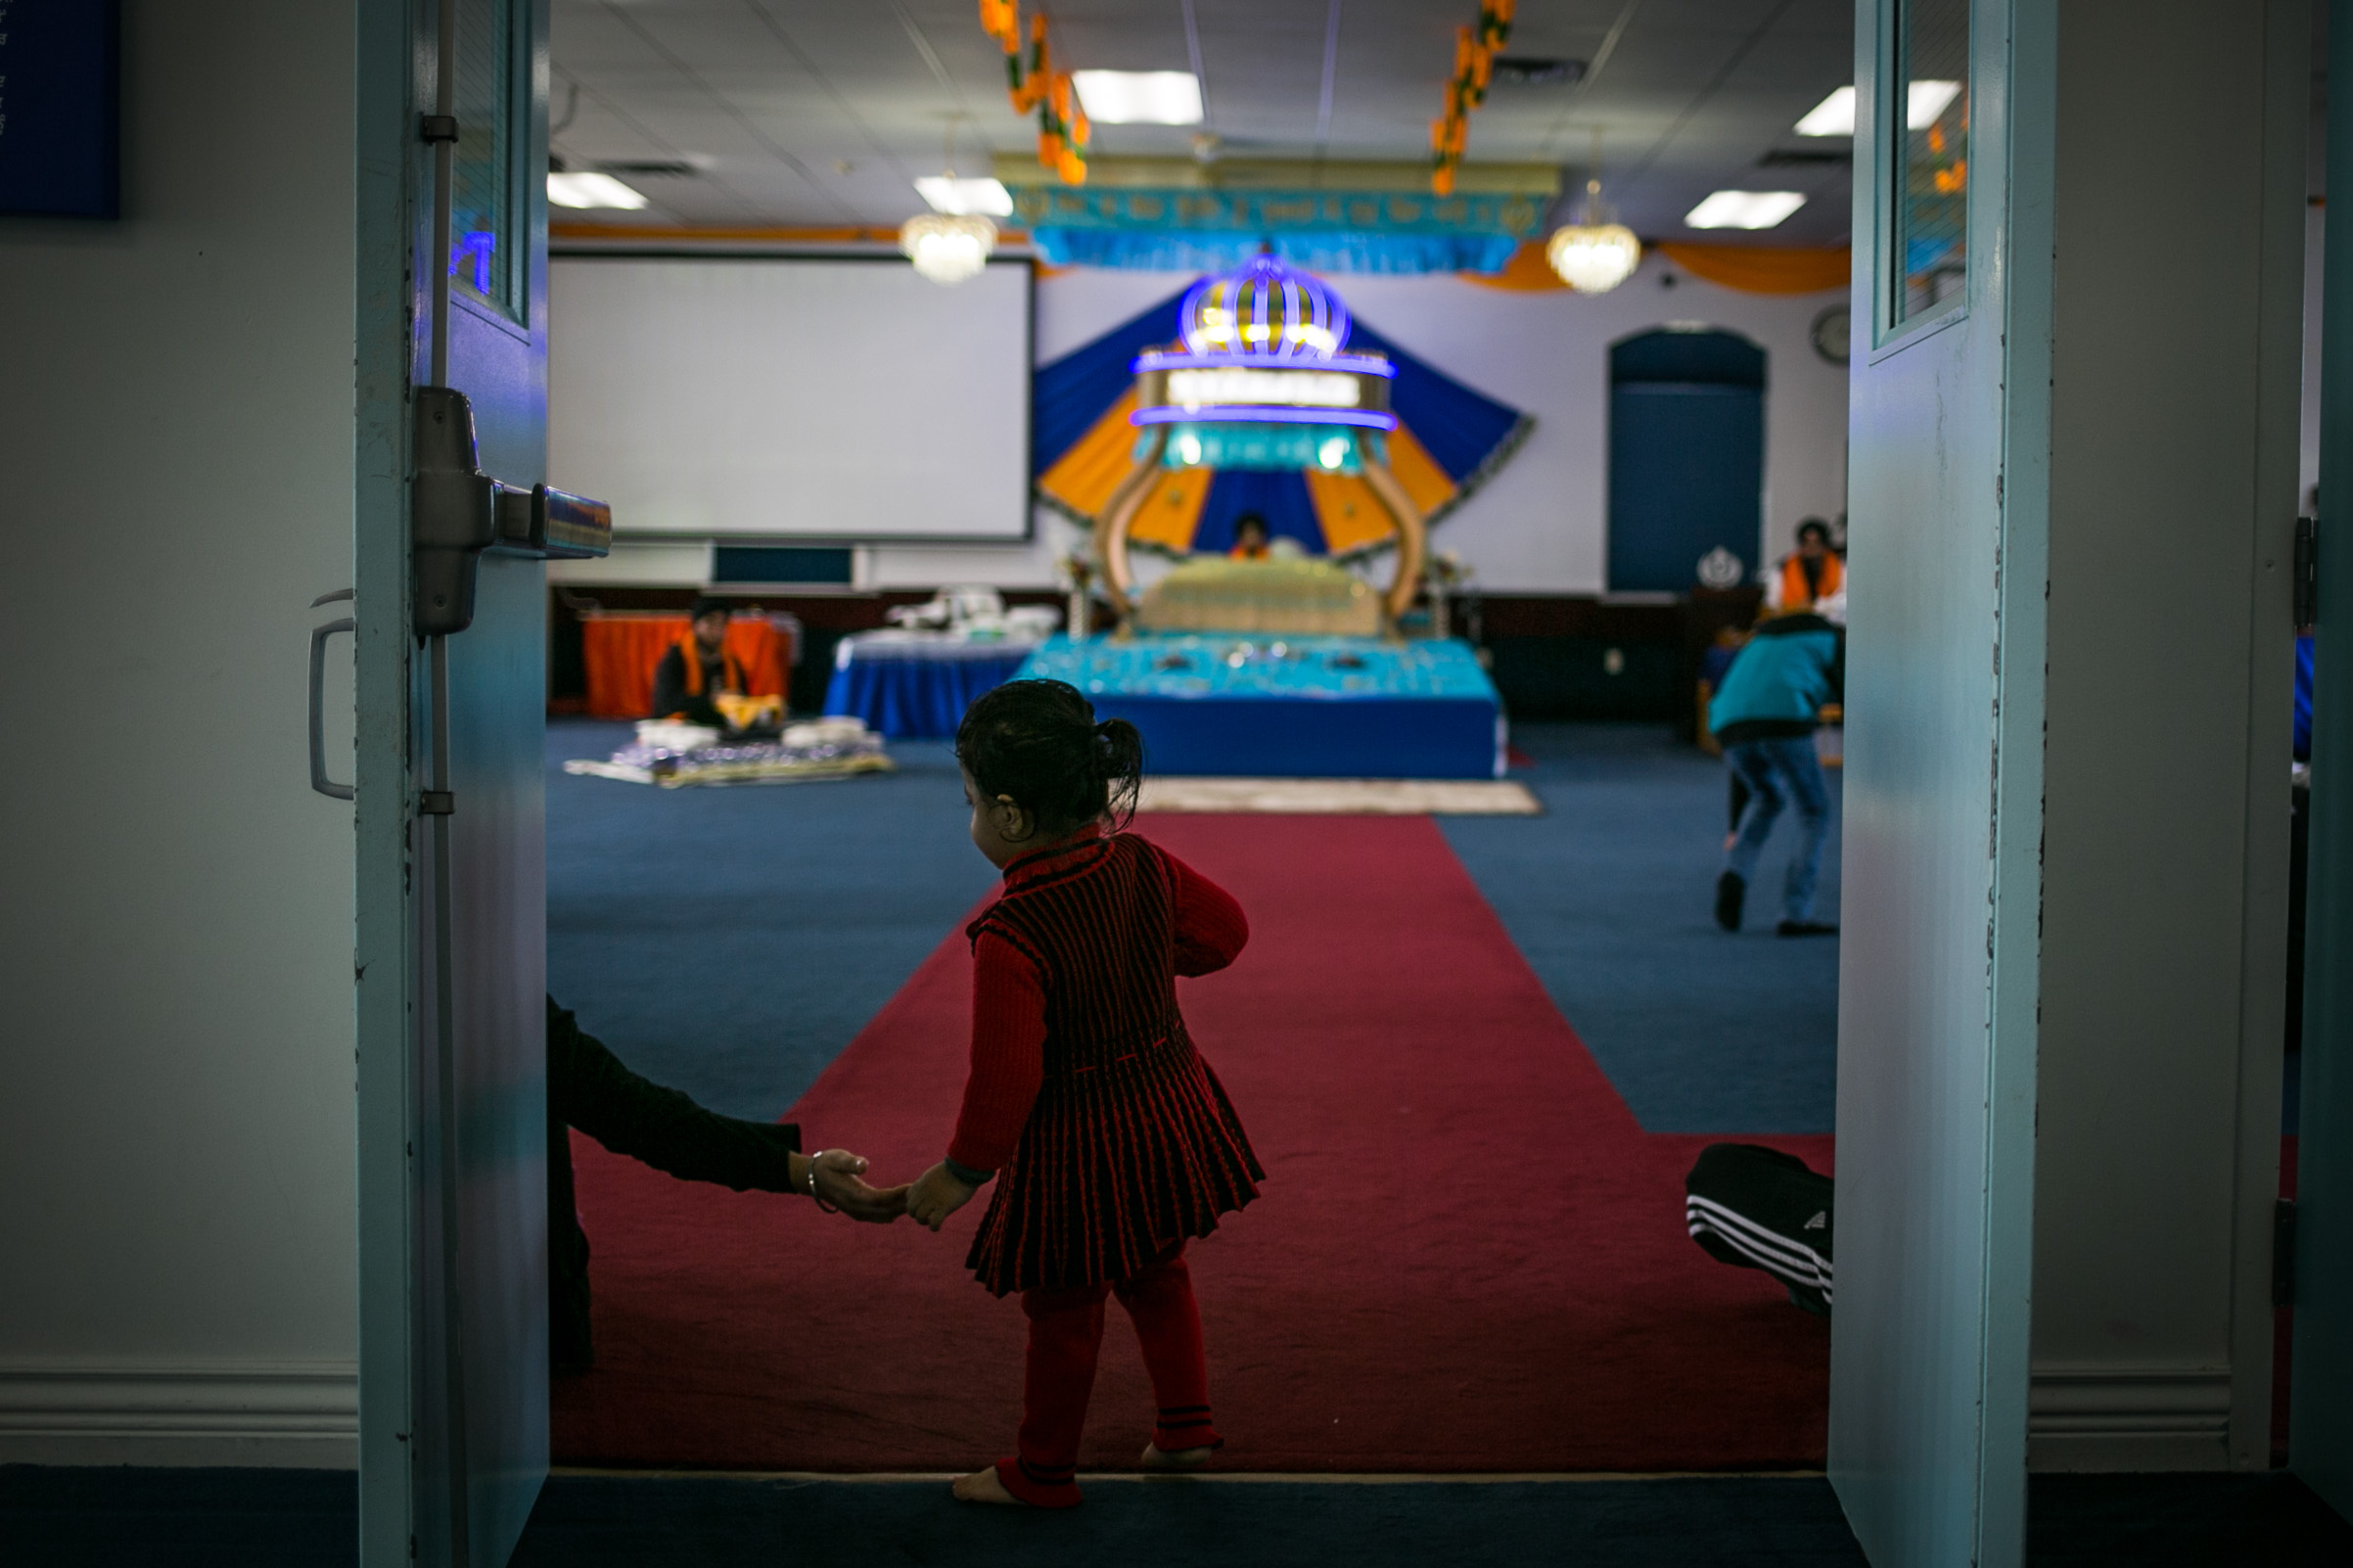 A child enters the Darbar Sahib, the main prayer hall, of Sikh temple Guru Nanak Gursikh Gurudwara in Lynden, Washington during a prayer service on March 1, 2015. During Sikh prayer services, participants sit barefoot on the floor of the the prayer hall after prostrating before the Sikh sacred text upon entering the room.